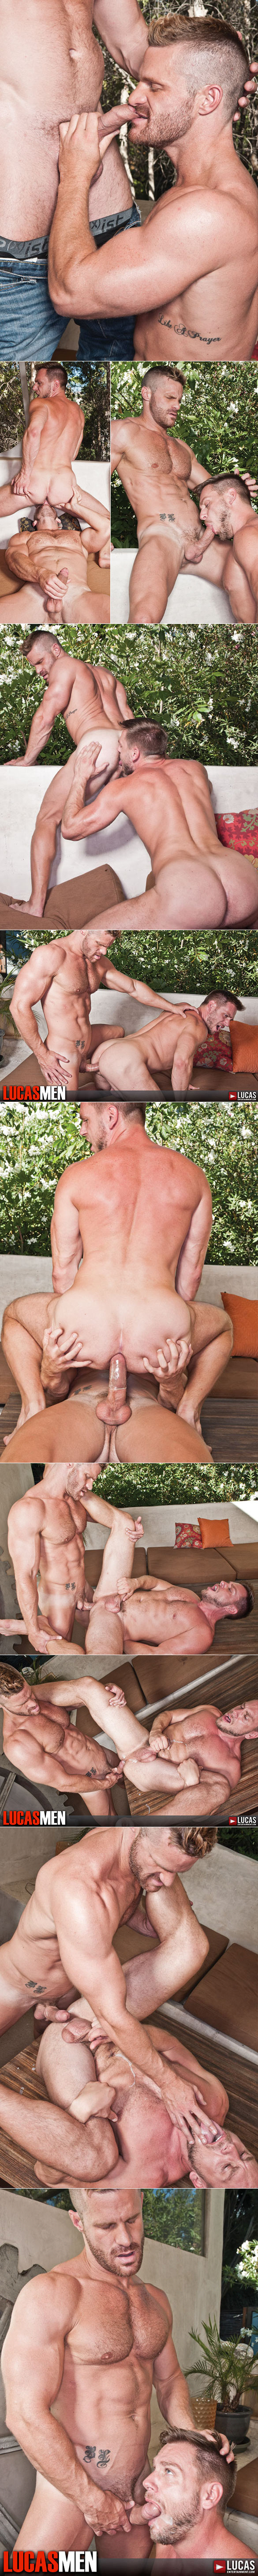 "Lucas Entertainment: Landon Conrad fucks Hans Berlin in ""Lucas Men"""